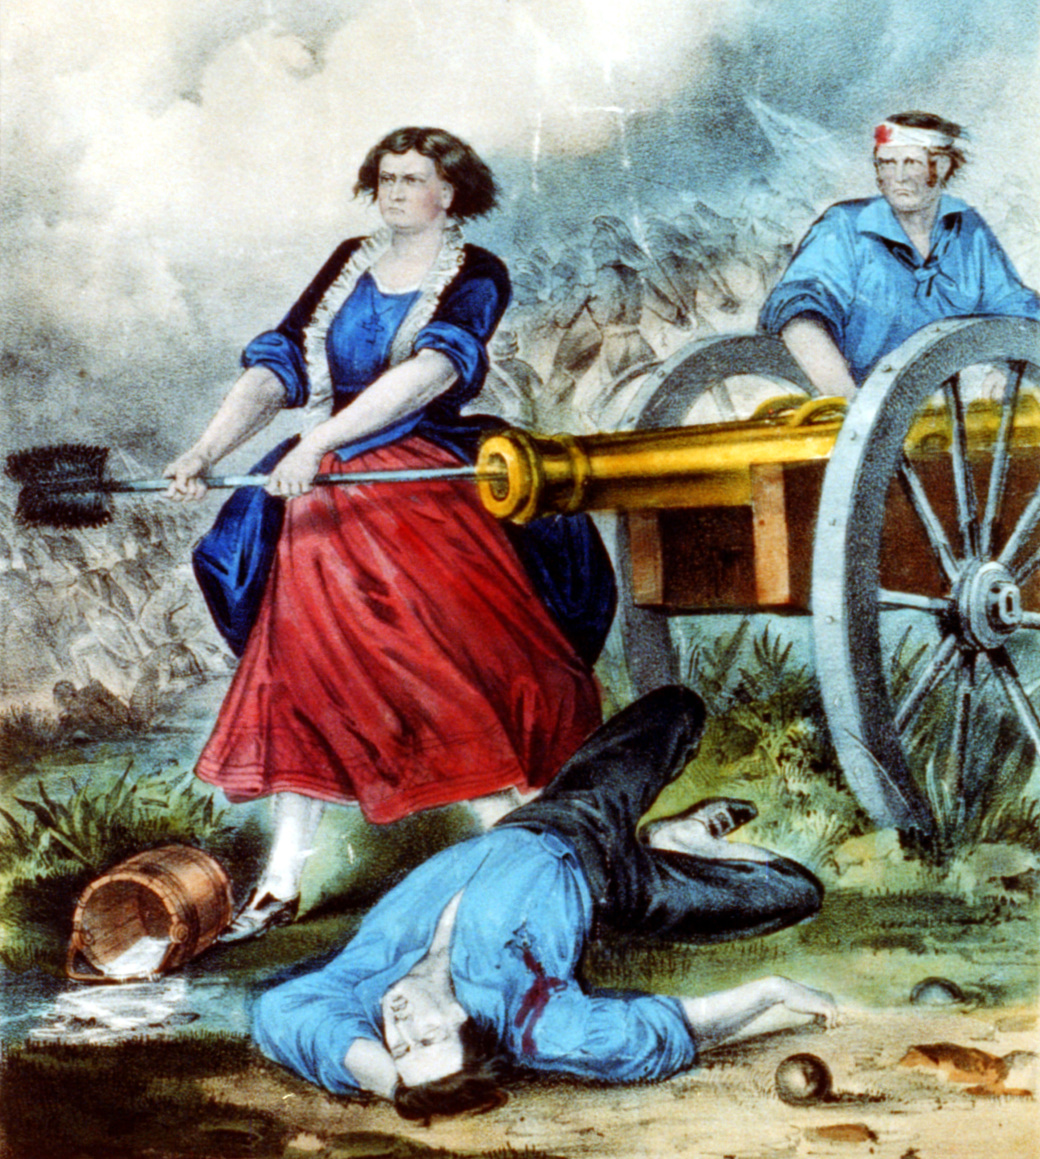 Women's Role in the American Revolution